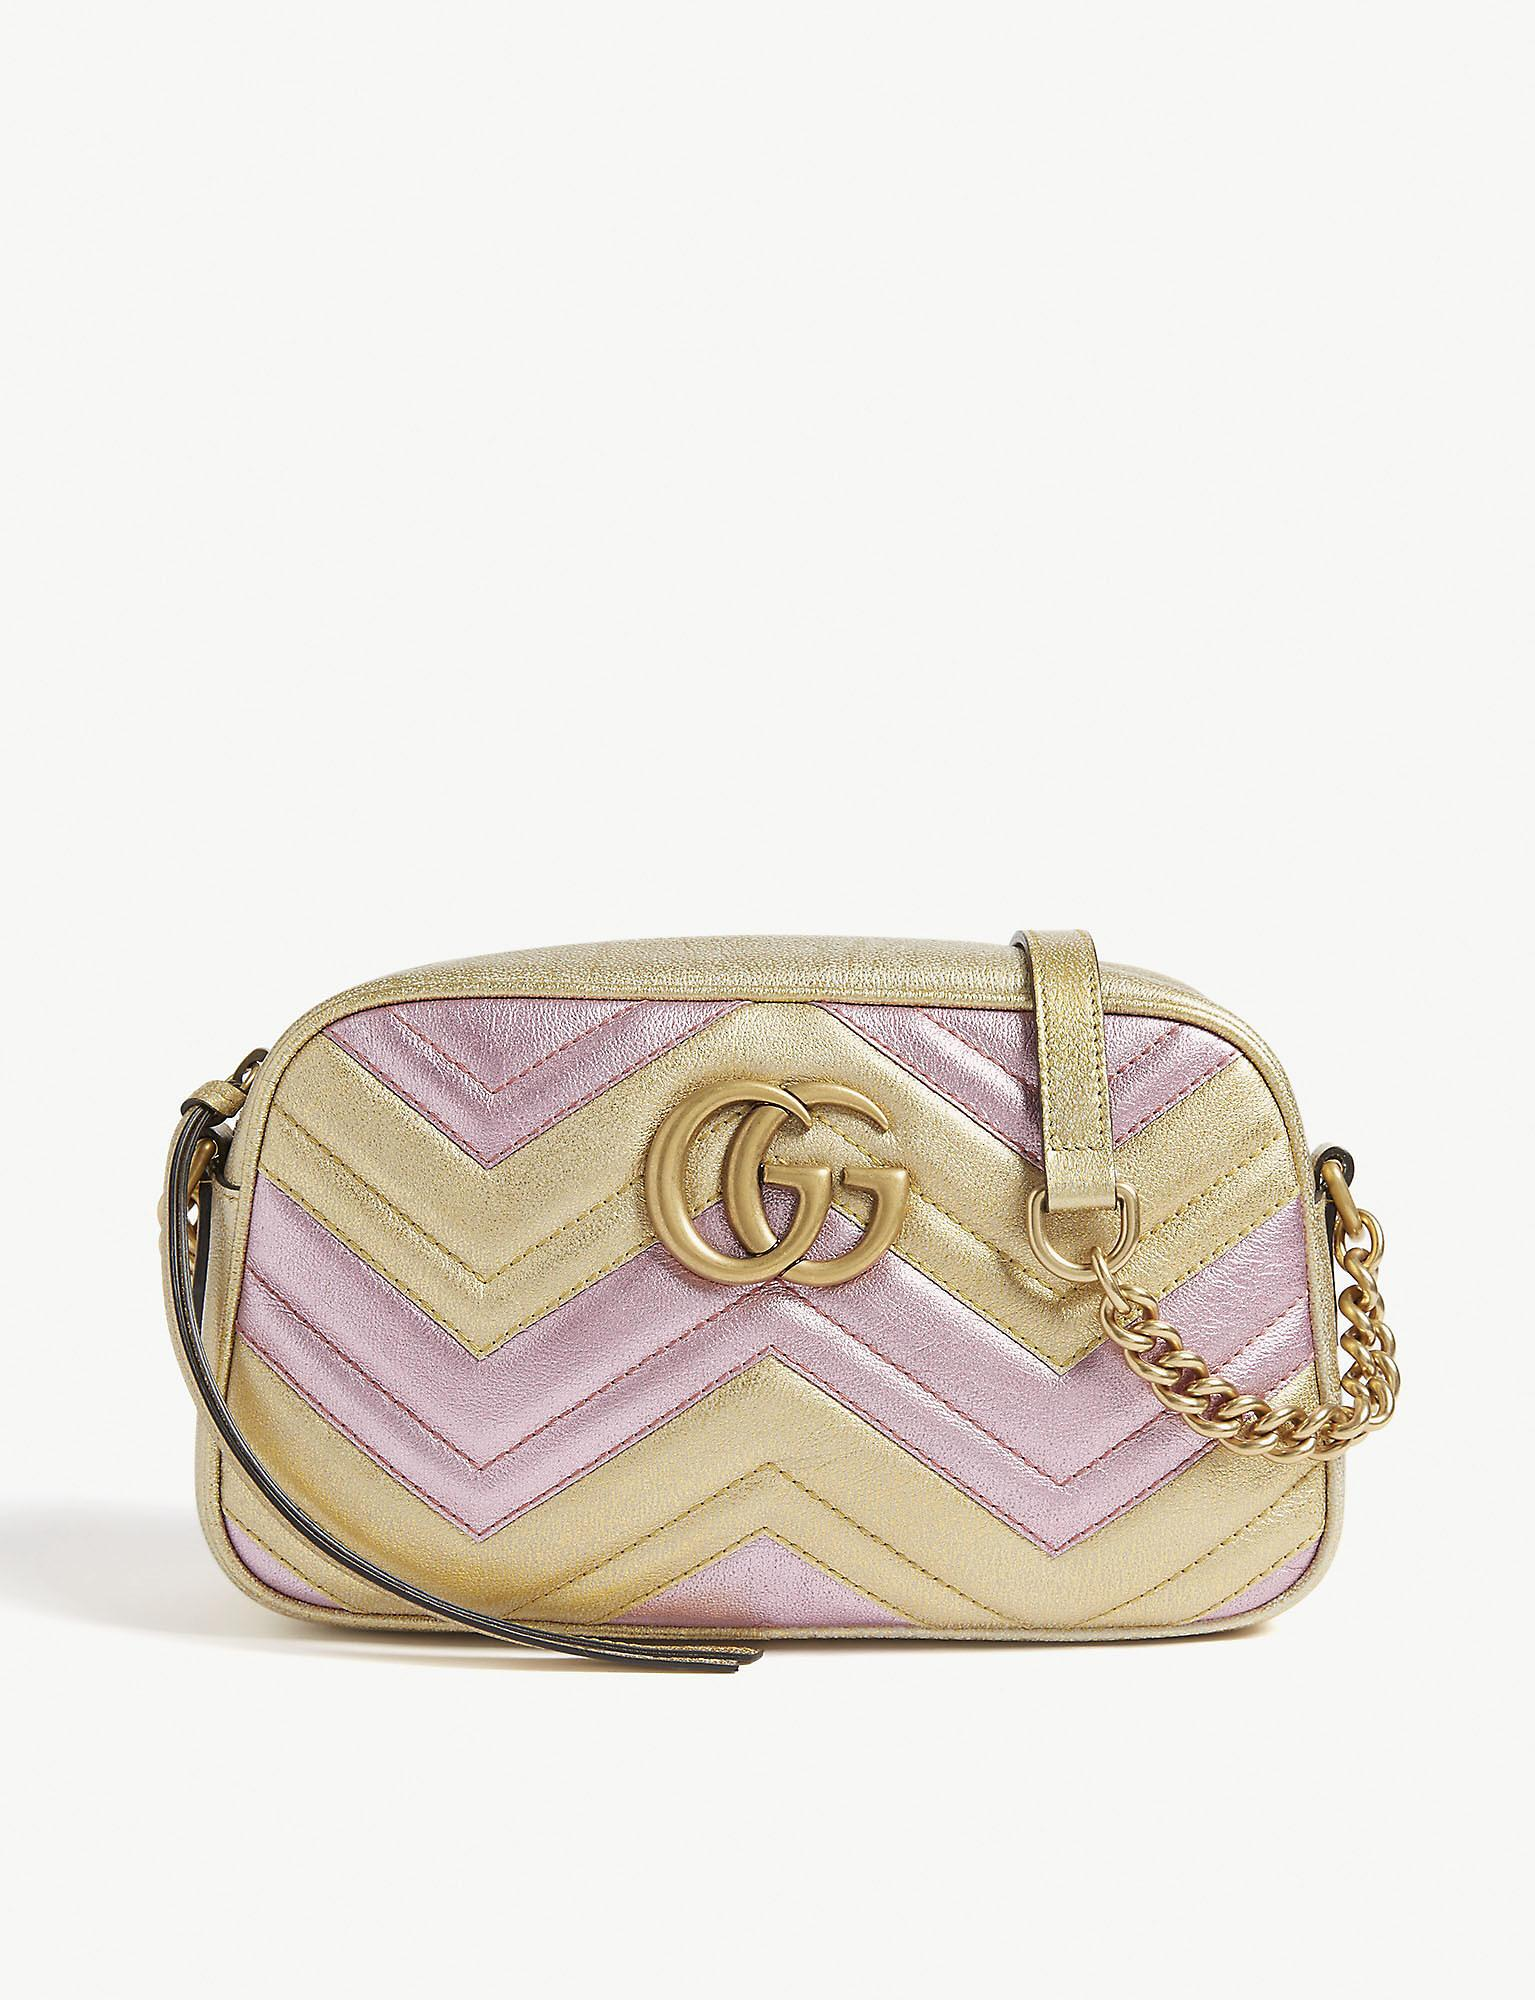 b1def03cf28ddd Gucci - Multicolor Women's Gold And Pink Zigzag GG Marmont Metallic Quilted  Leather Shoulder Bag -. View fullscreen